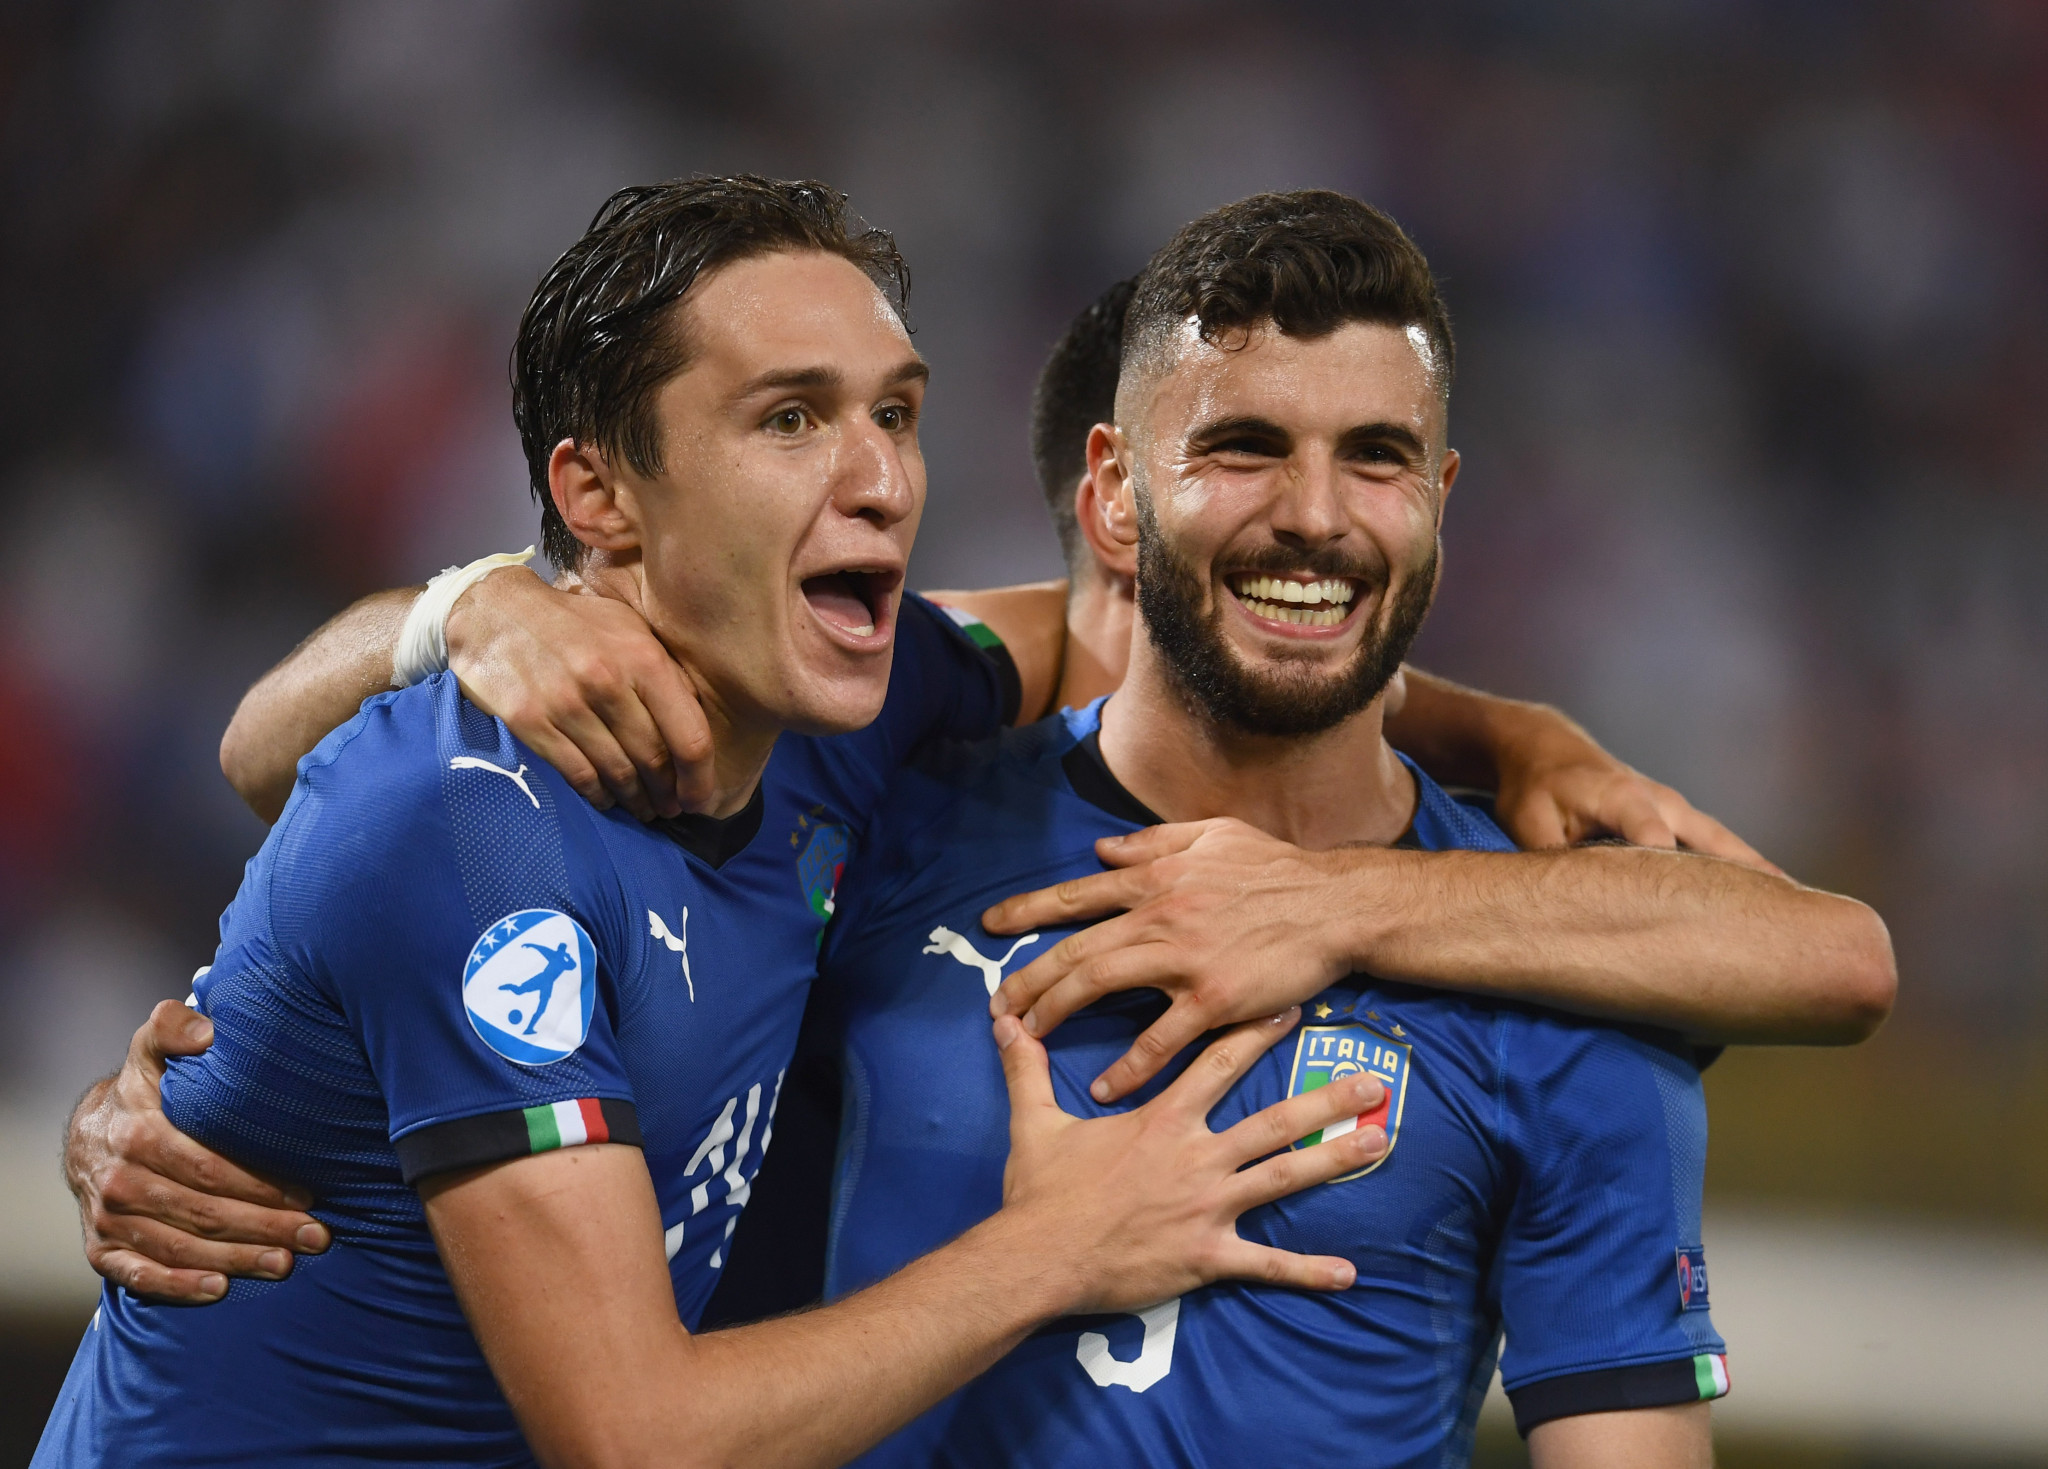 Italy overcome early setback to open European Under-21 Championship campaign with victory over Spain